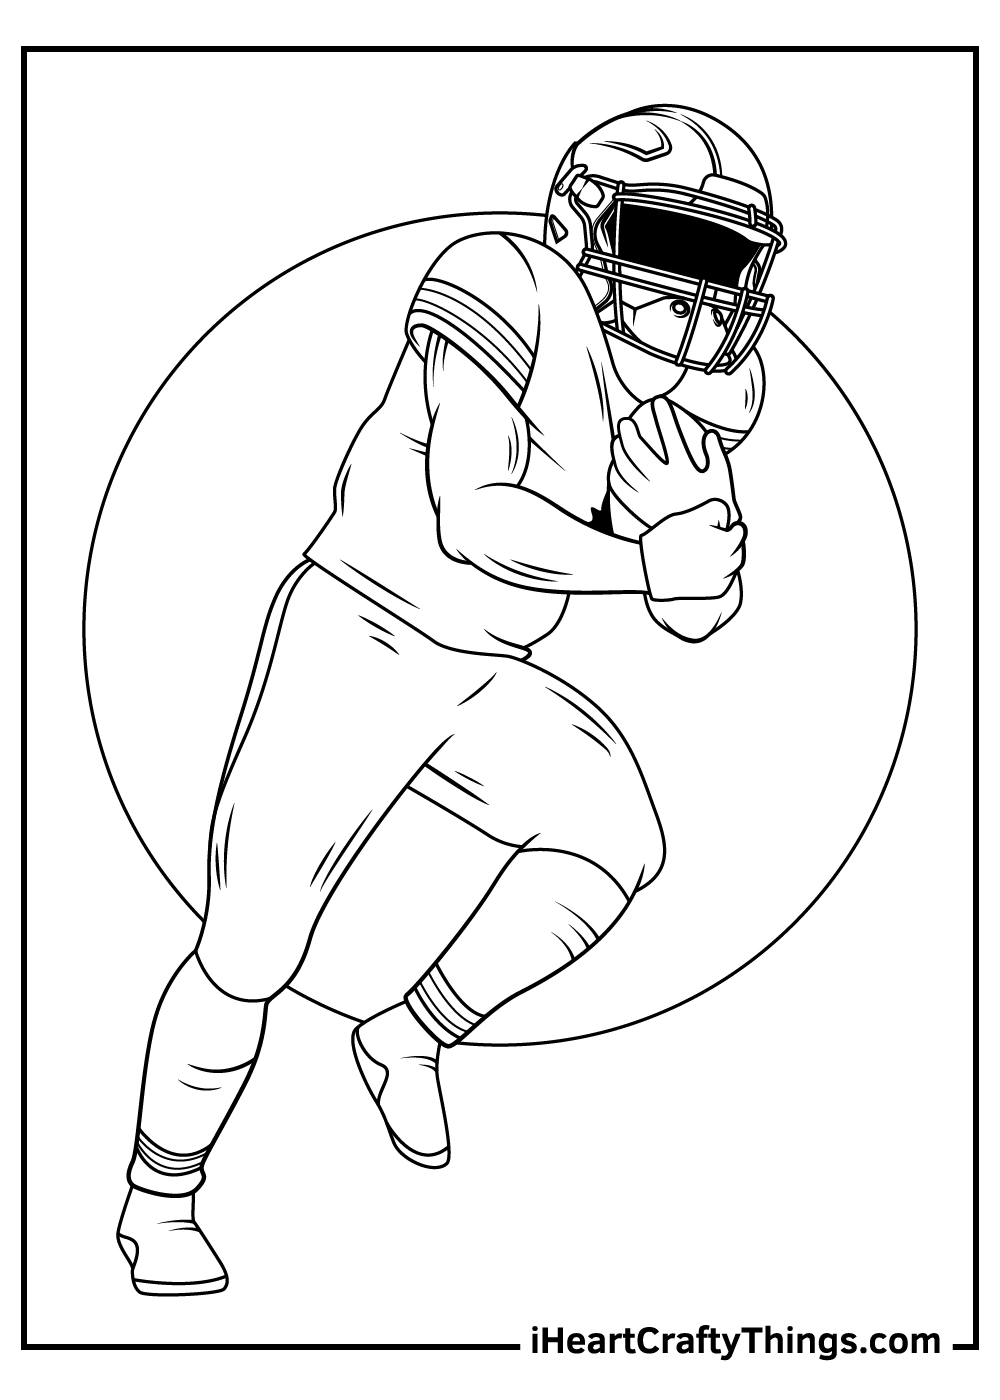 free printable NFL coloring pages for adults